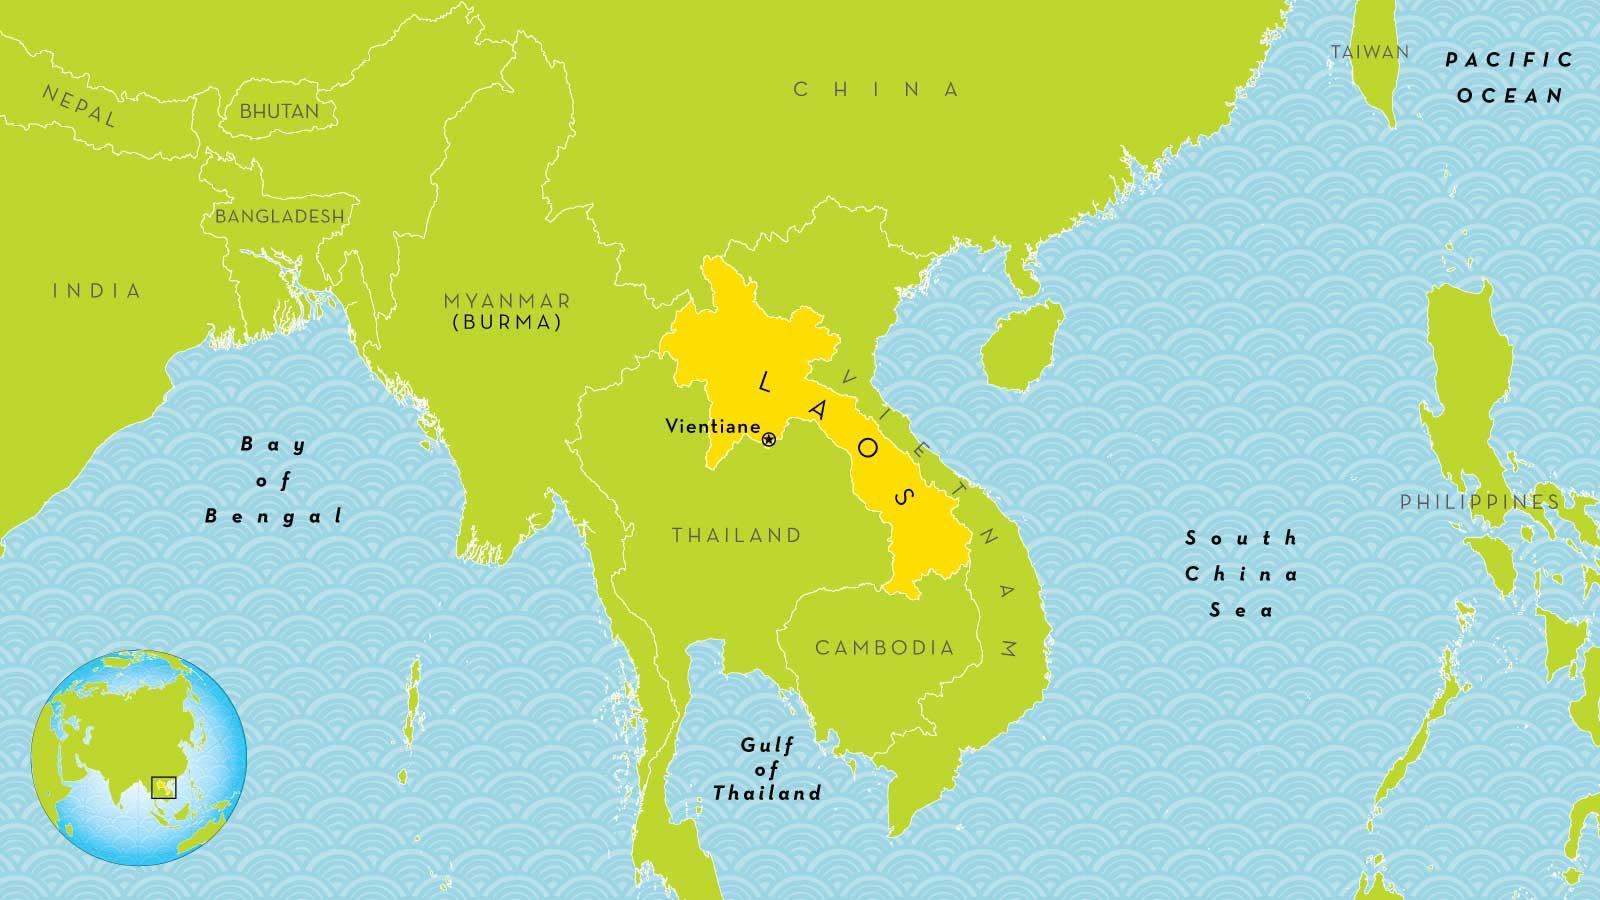 Location Of Asia In World Map.Laos World Map Laos Location On World Map South Eastern Asia Asia